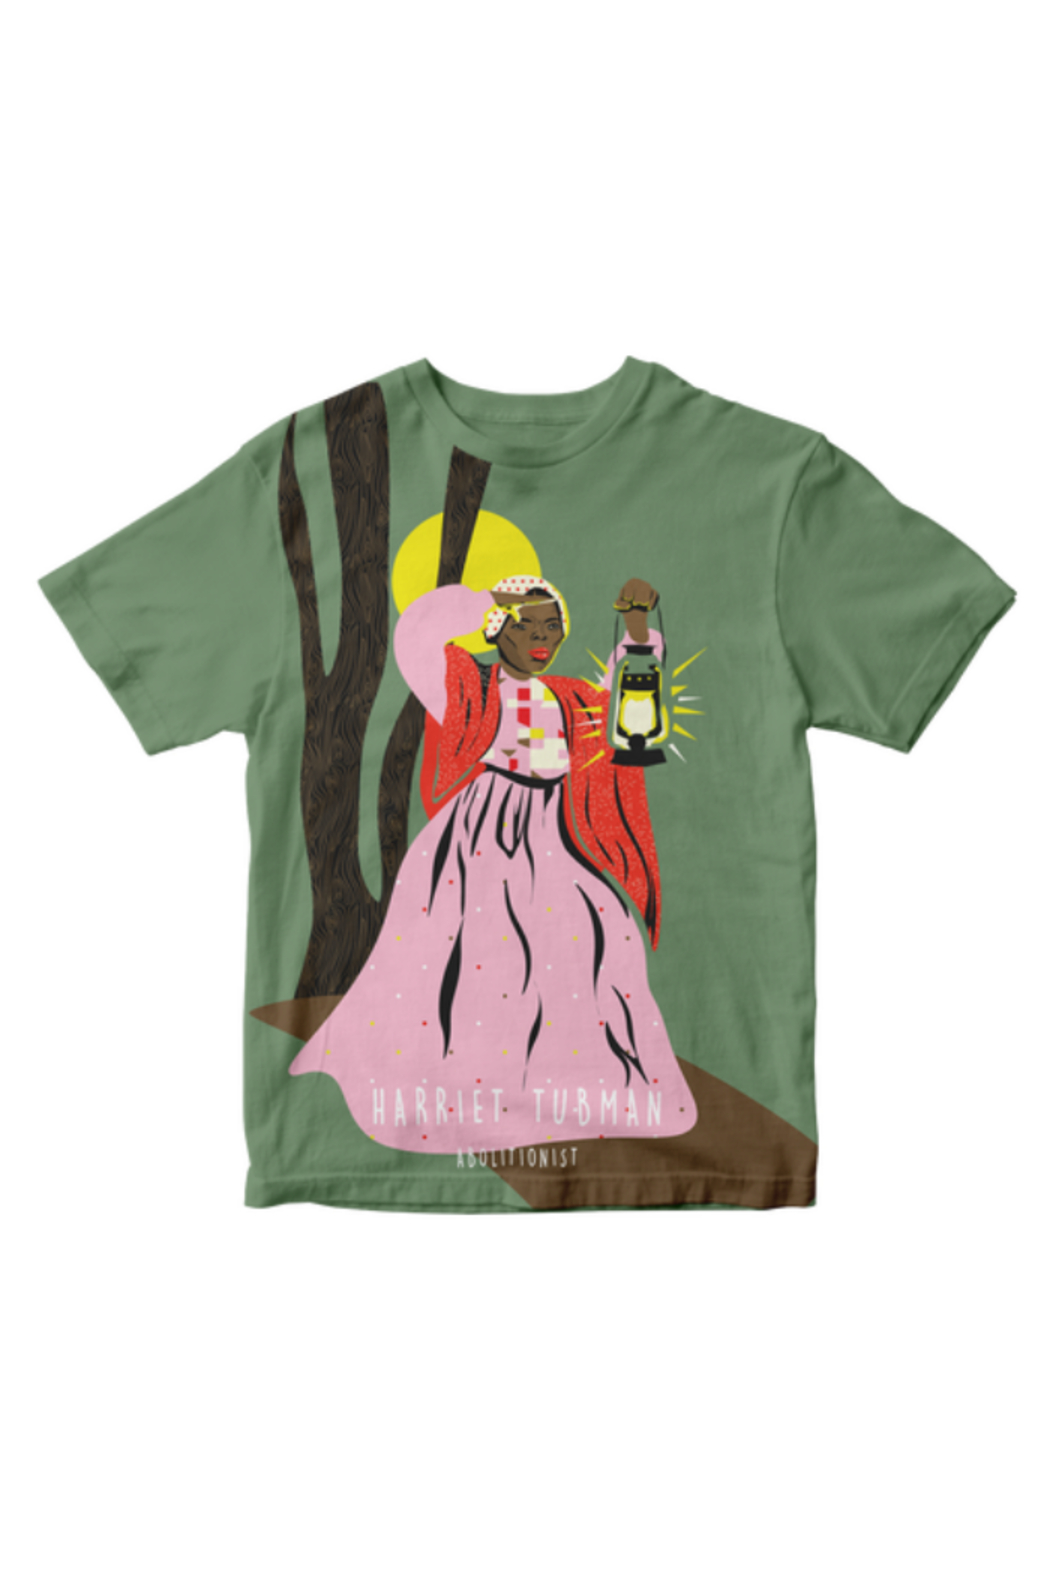 Piccolina Kids Trailblazer Tee - Harriet Tubman - Main Image